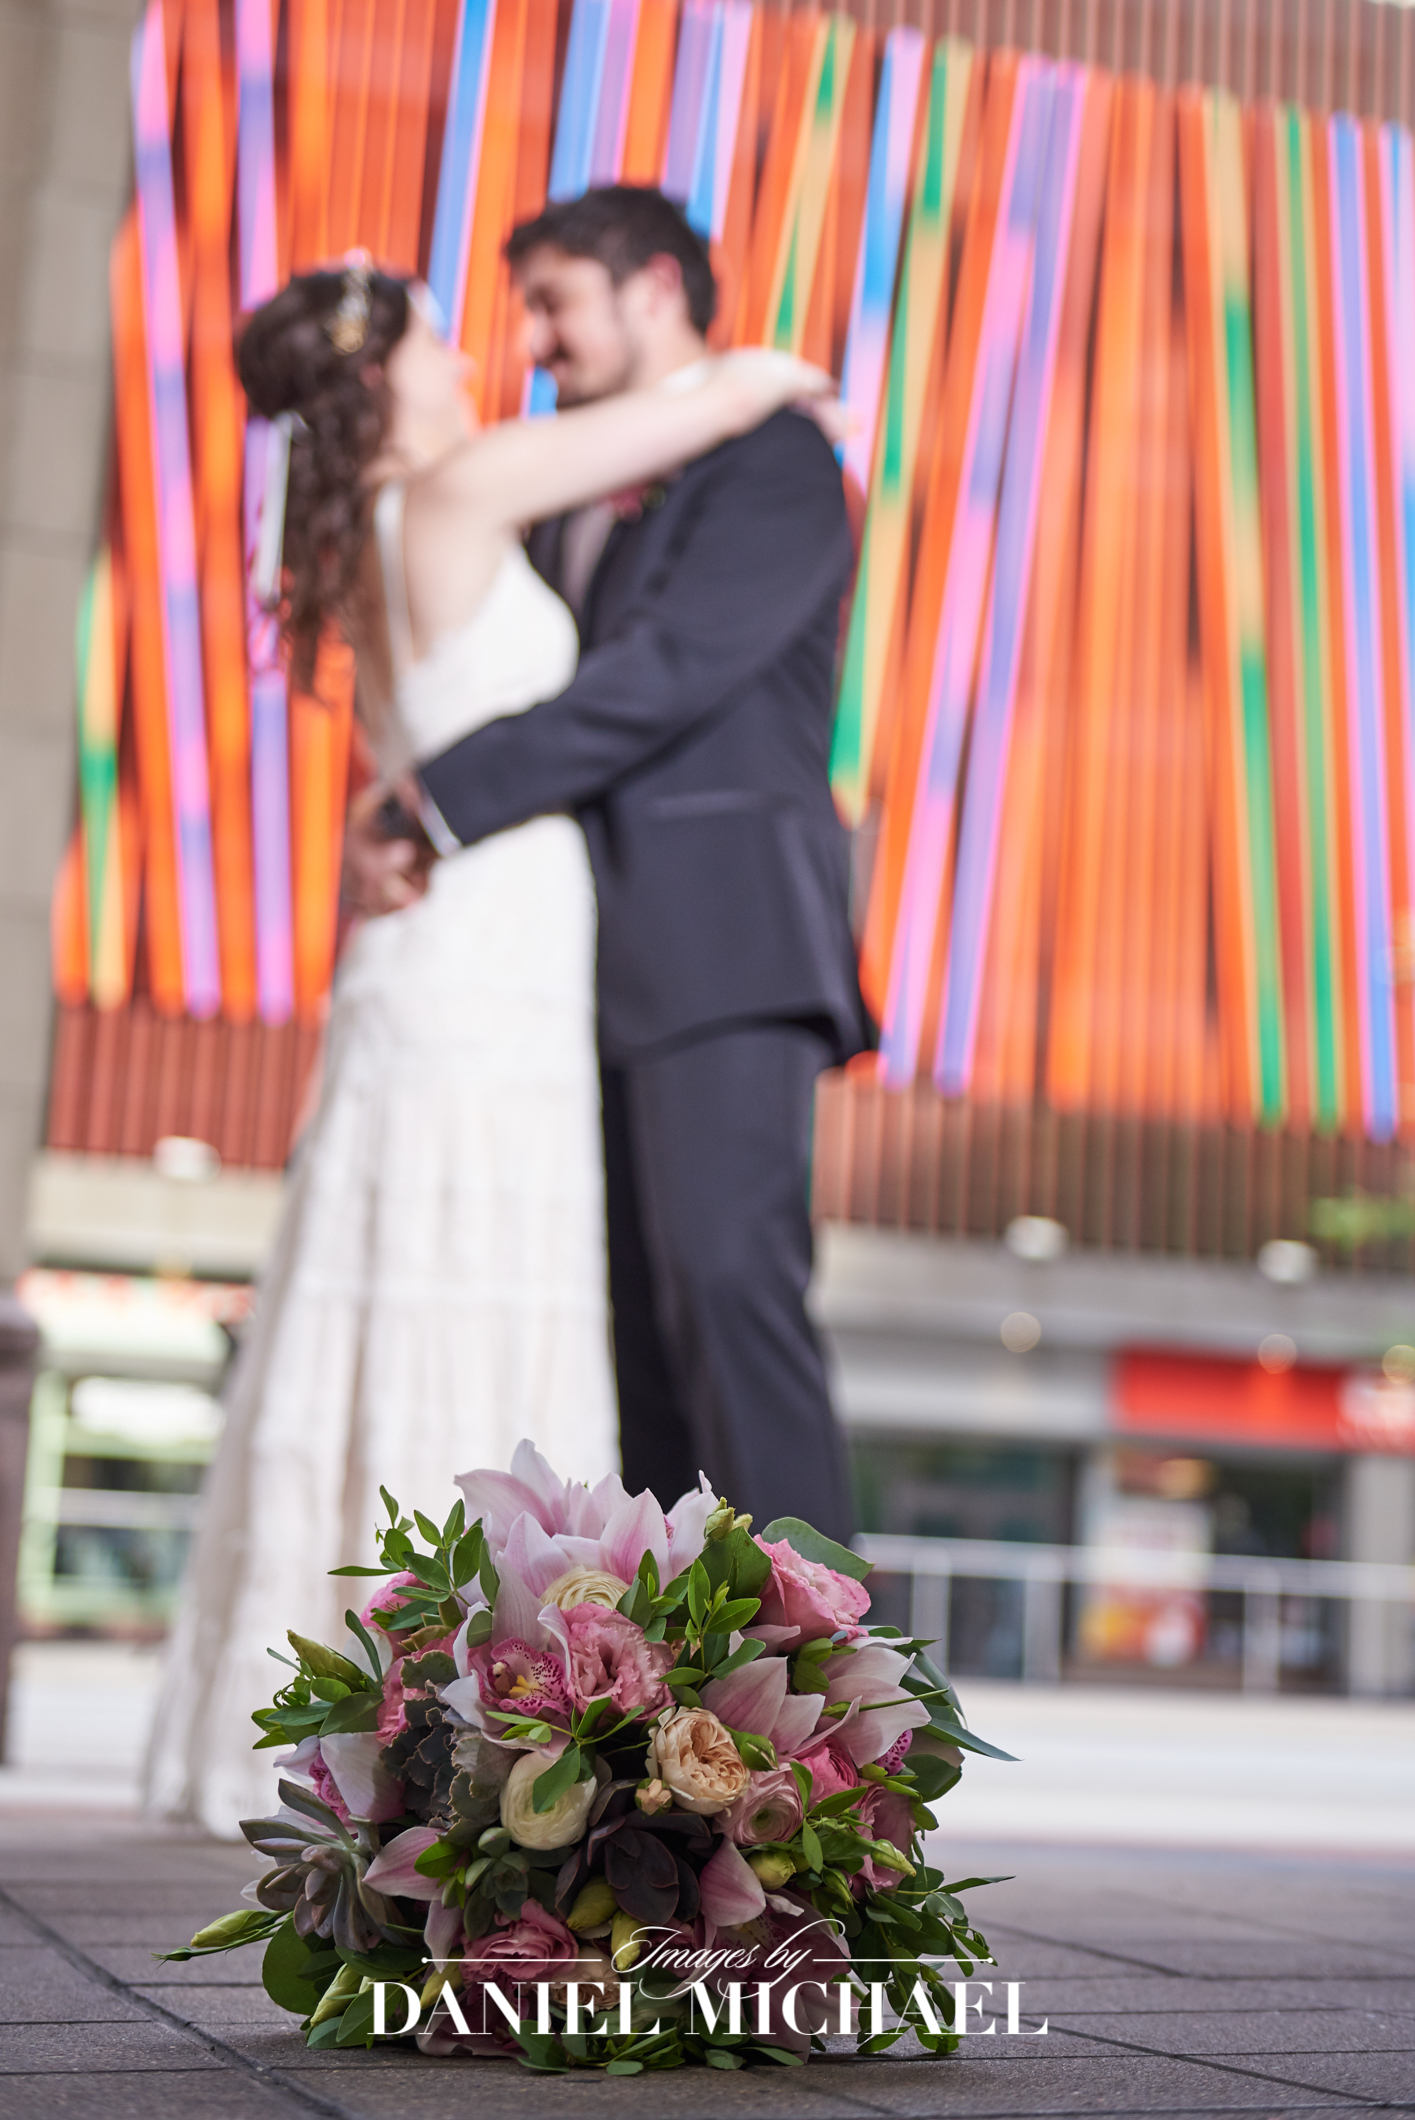 Contemporary Arts Center Venue Wedding Photographer